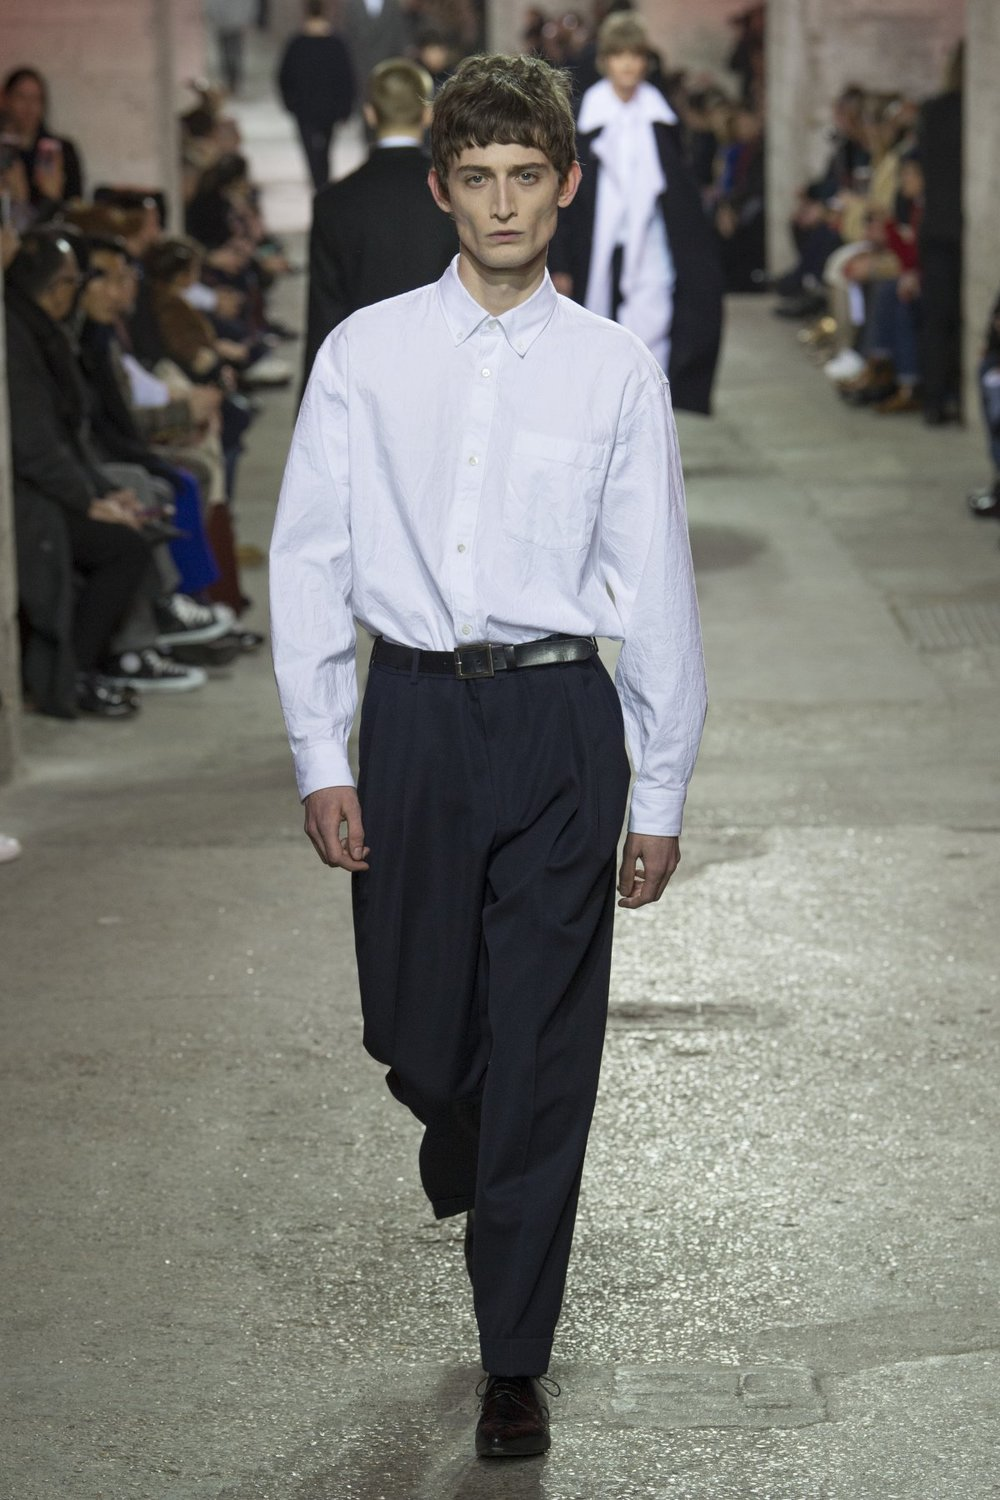 dries_van_noten_look_9_2017_aw_mens.jpeg